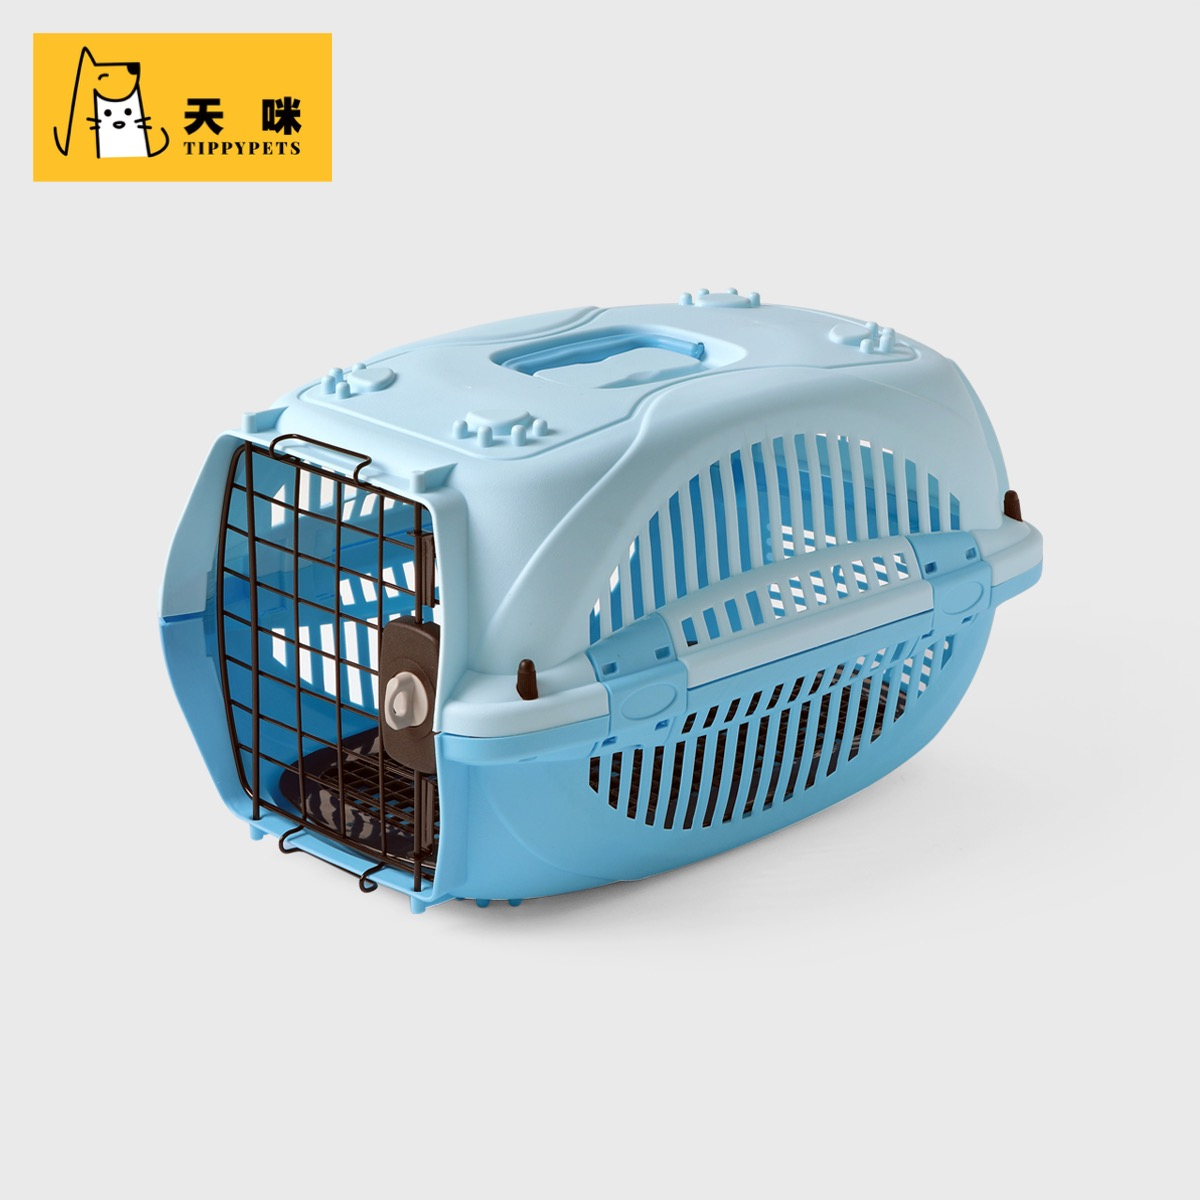 Tippy Pets New IATA Standard Pet Carrier Kennel Pet Cage Pet Travel Kennel For Dog and Cats